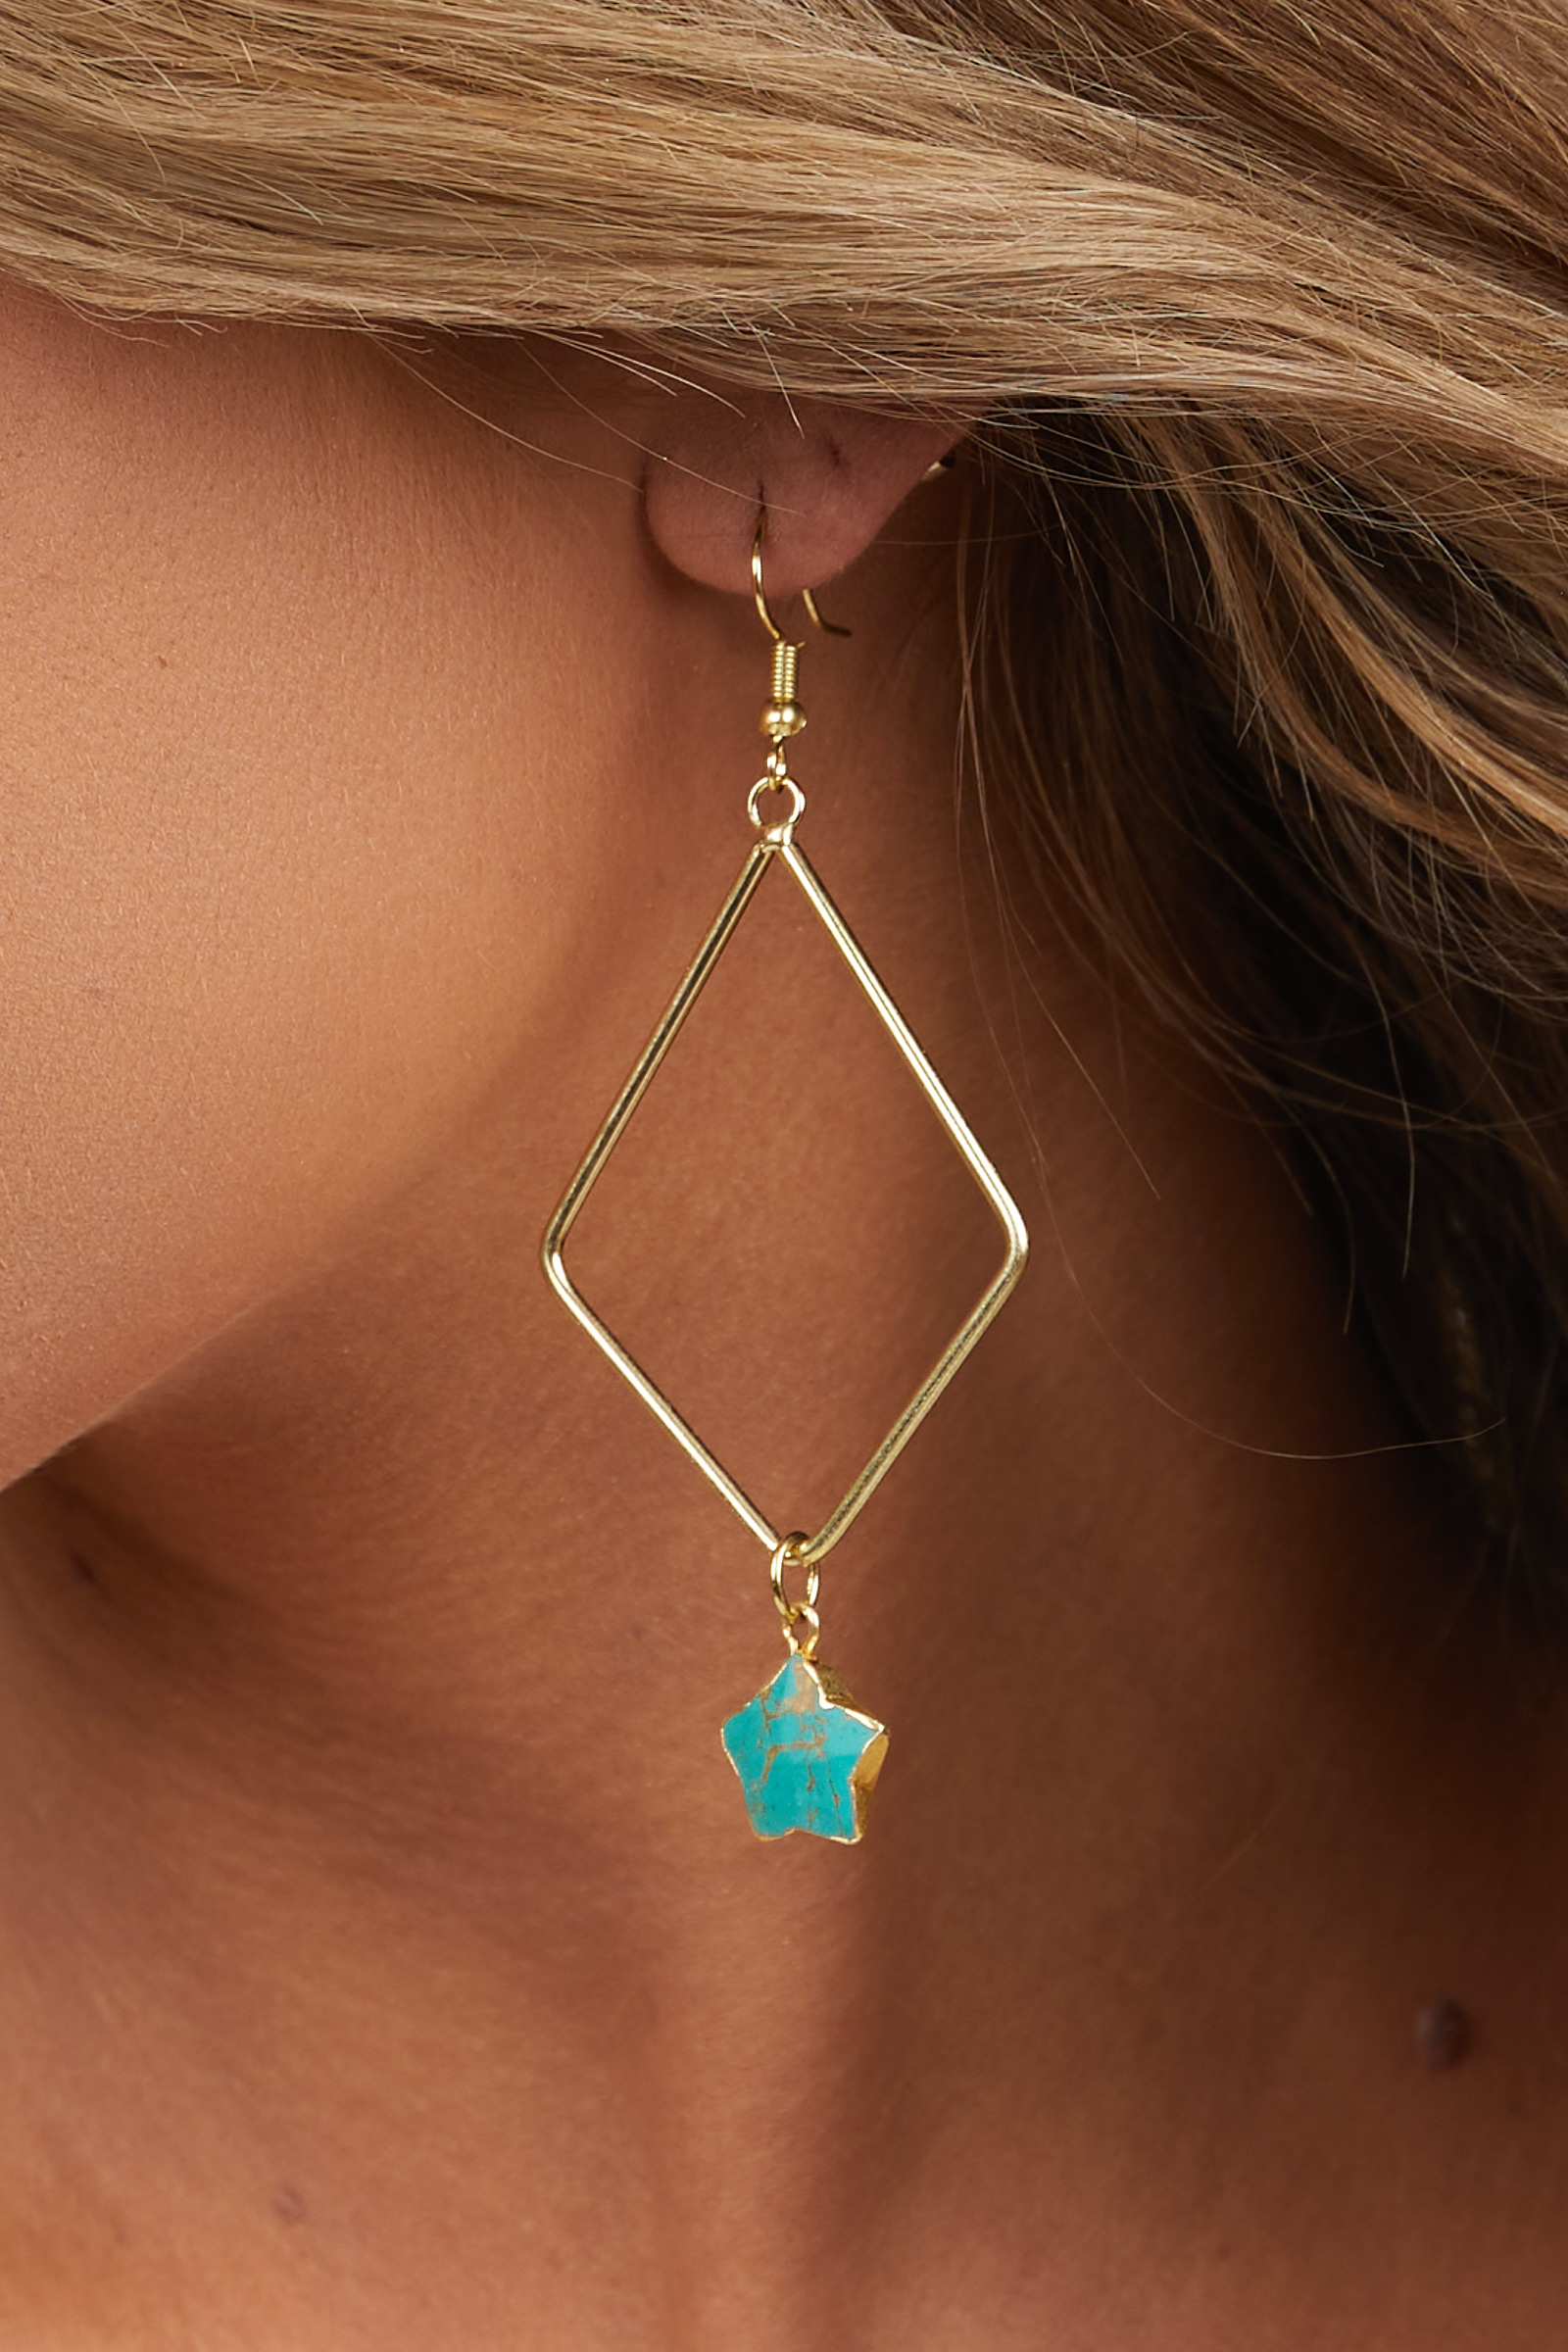 Gold Triangle Dangle Earrings with Turquoise Stars